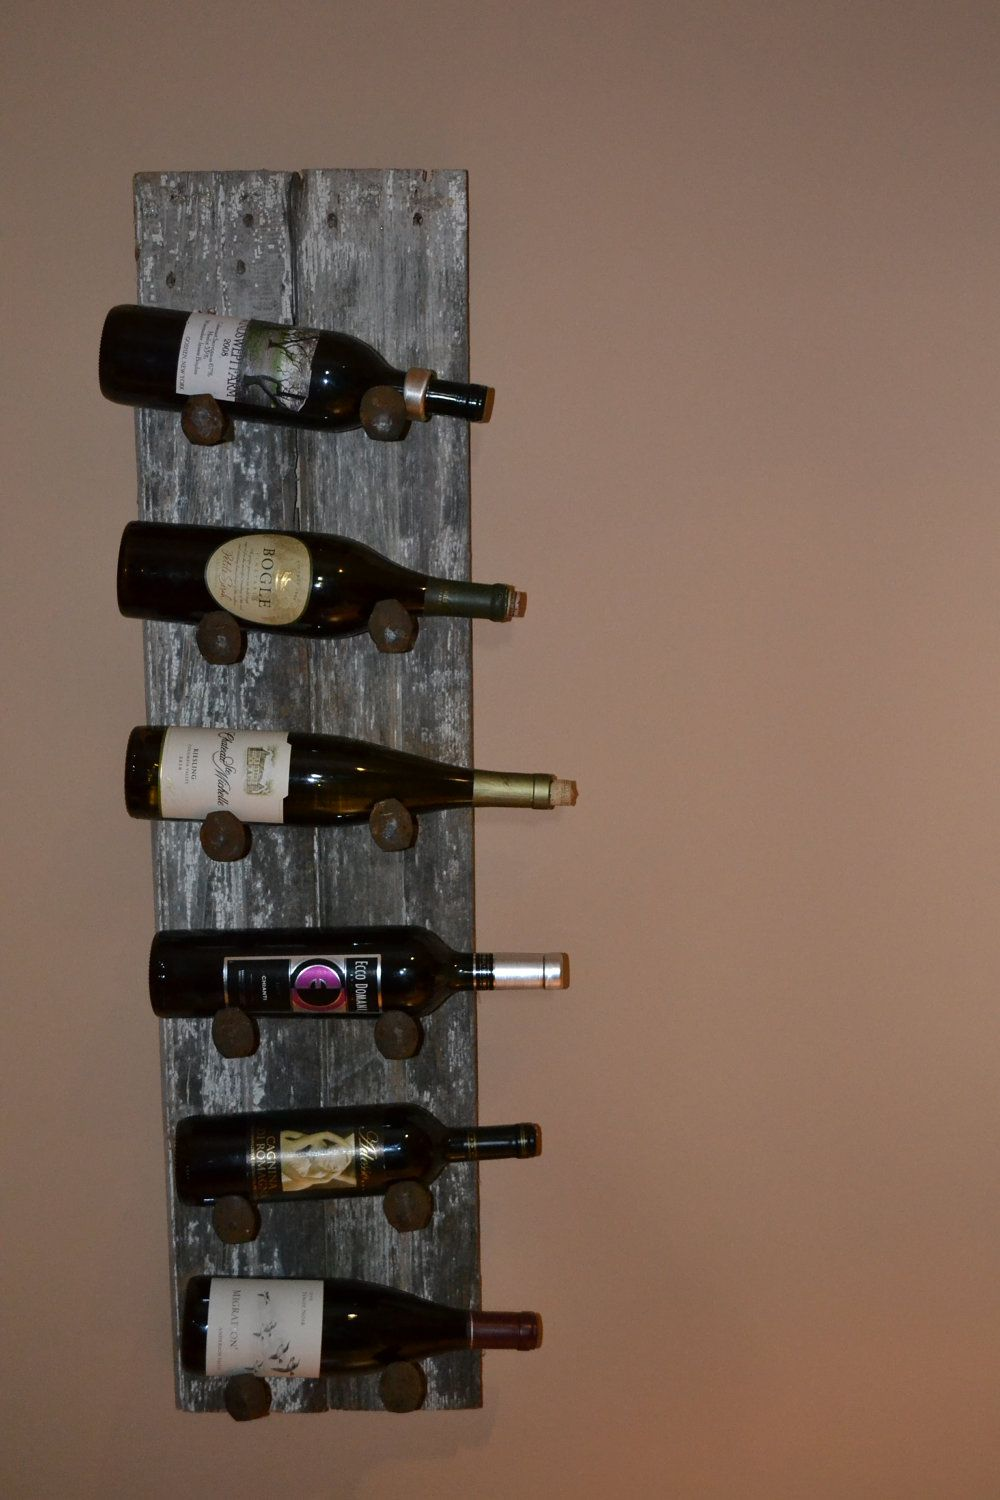 Probably easy to make barn wood wine rack can make with old probably easy to make barn wood wine rack can make with old fence boards we have live by the tains for a reason lol could use as towel holder in bathroom baanklon Image collections